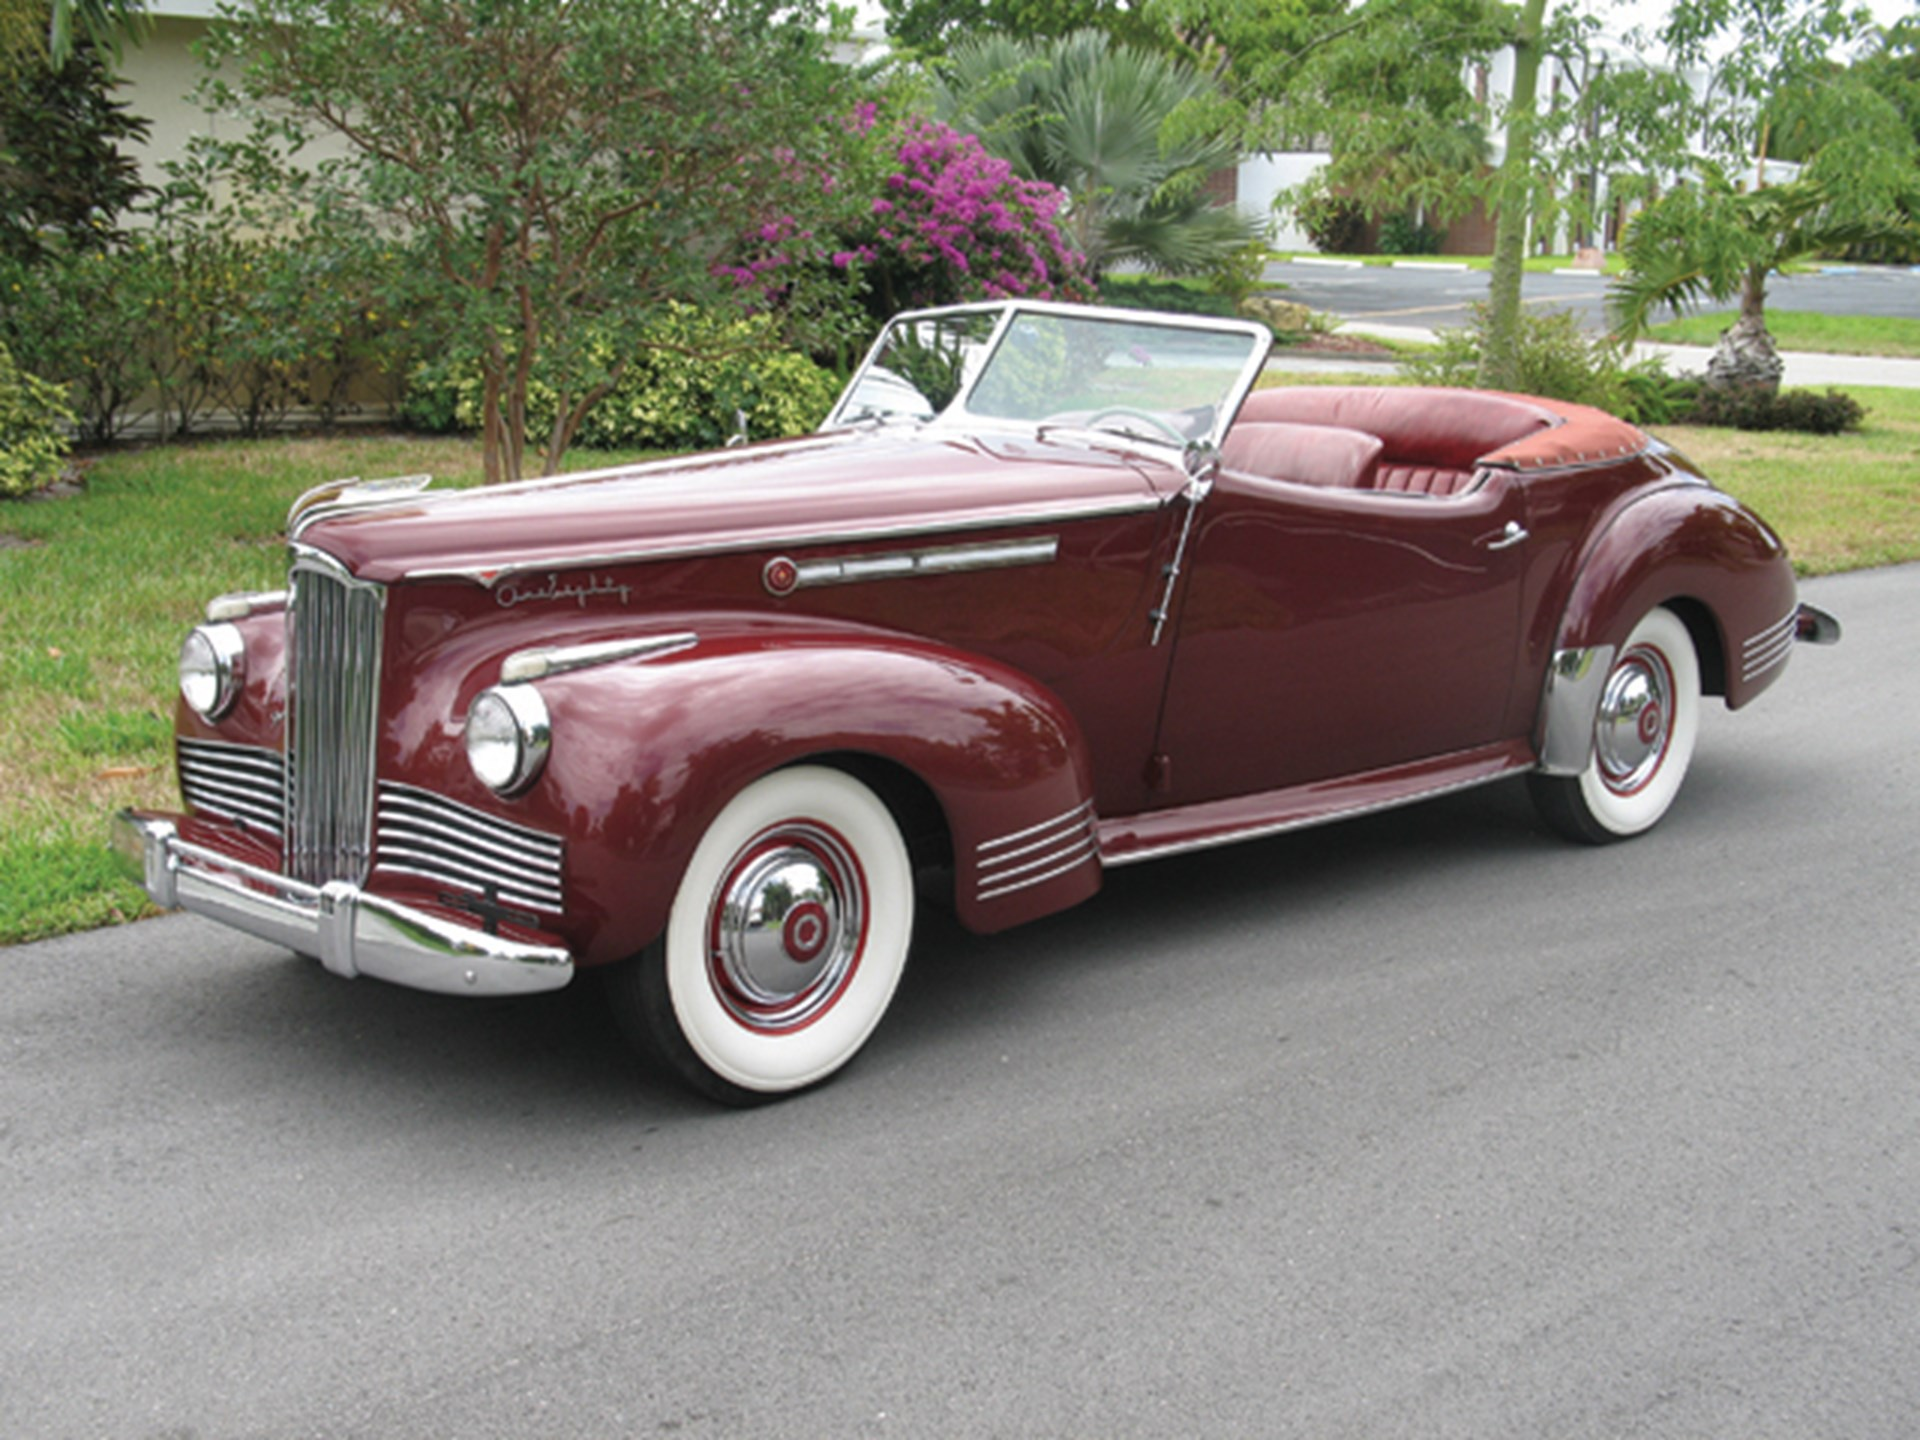 1942 Packard One-Eighty Convertible Victoria by Darrin